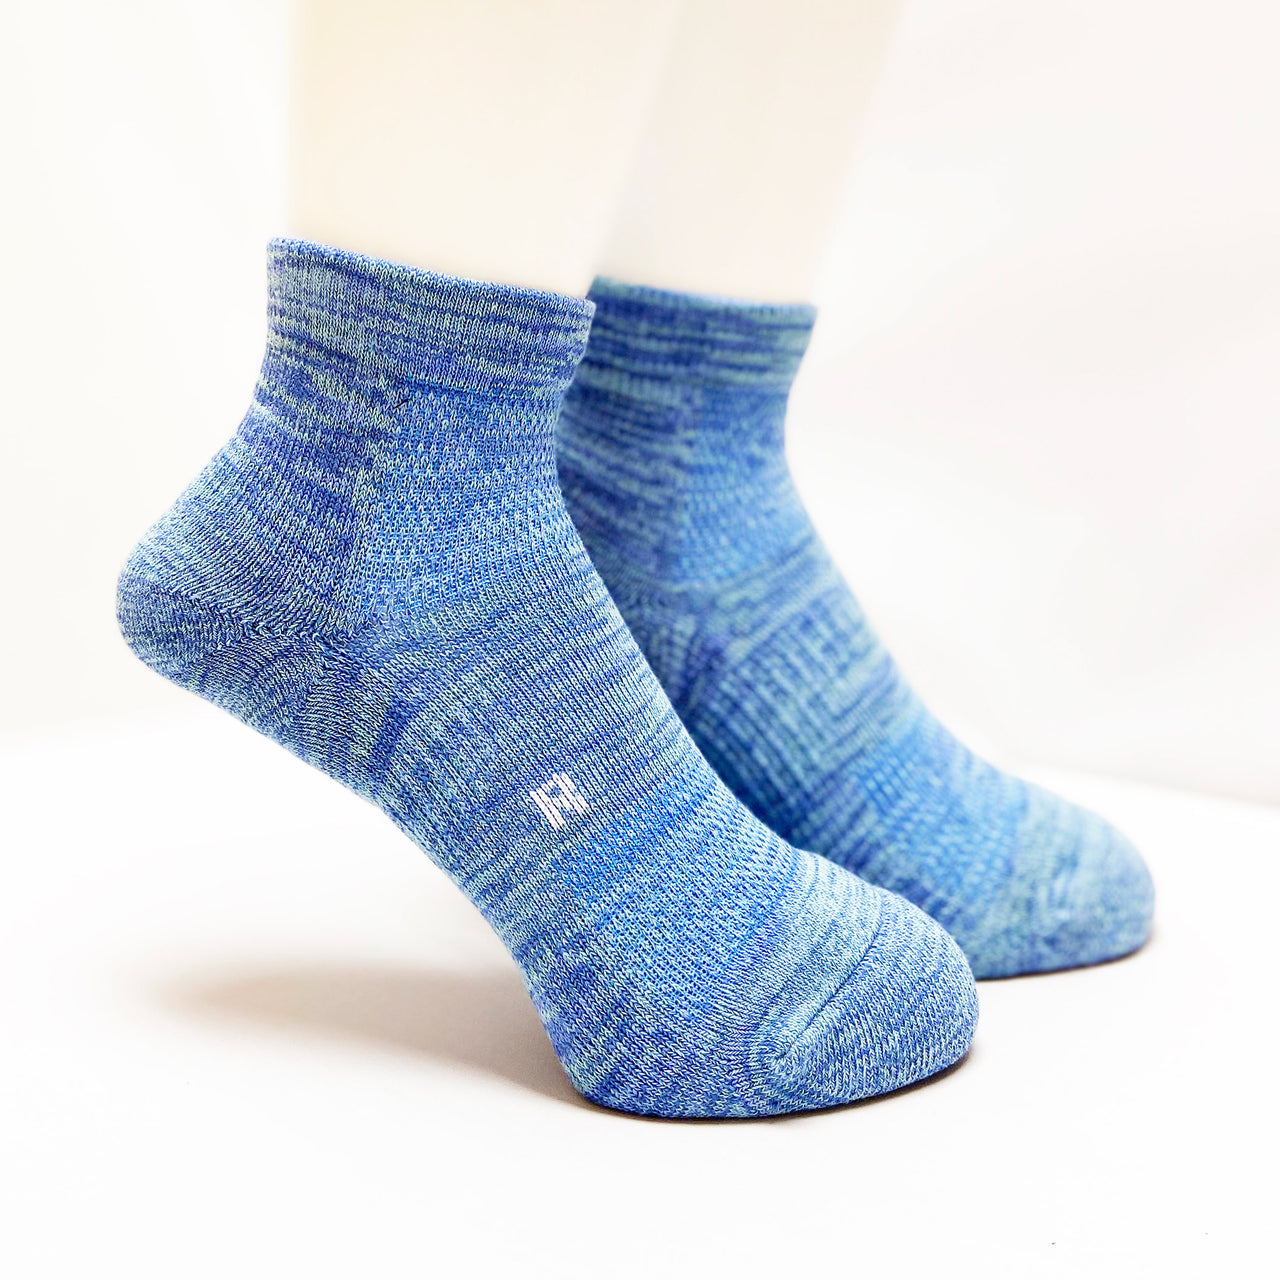 Arch Support Athletic Socks | Walking | Women | Blue - CHERRYSTONE by MARKET TO JAPAN LLC